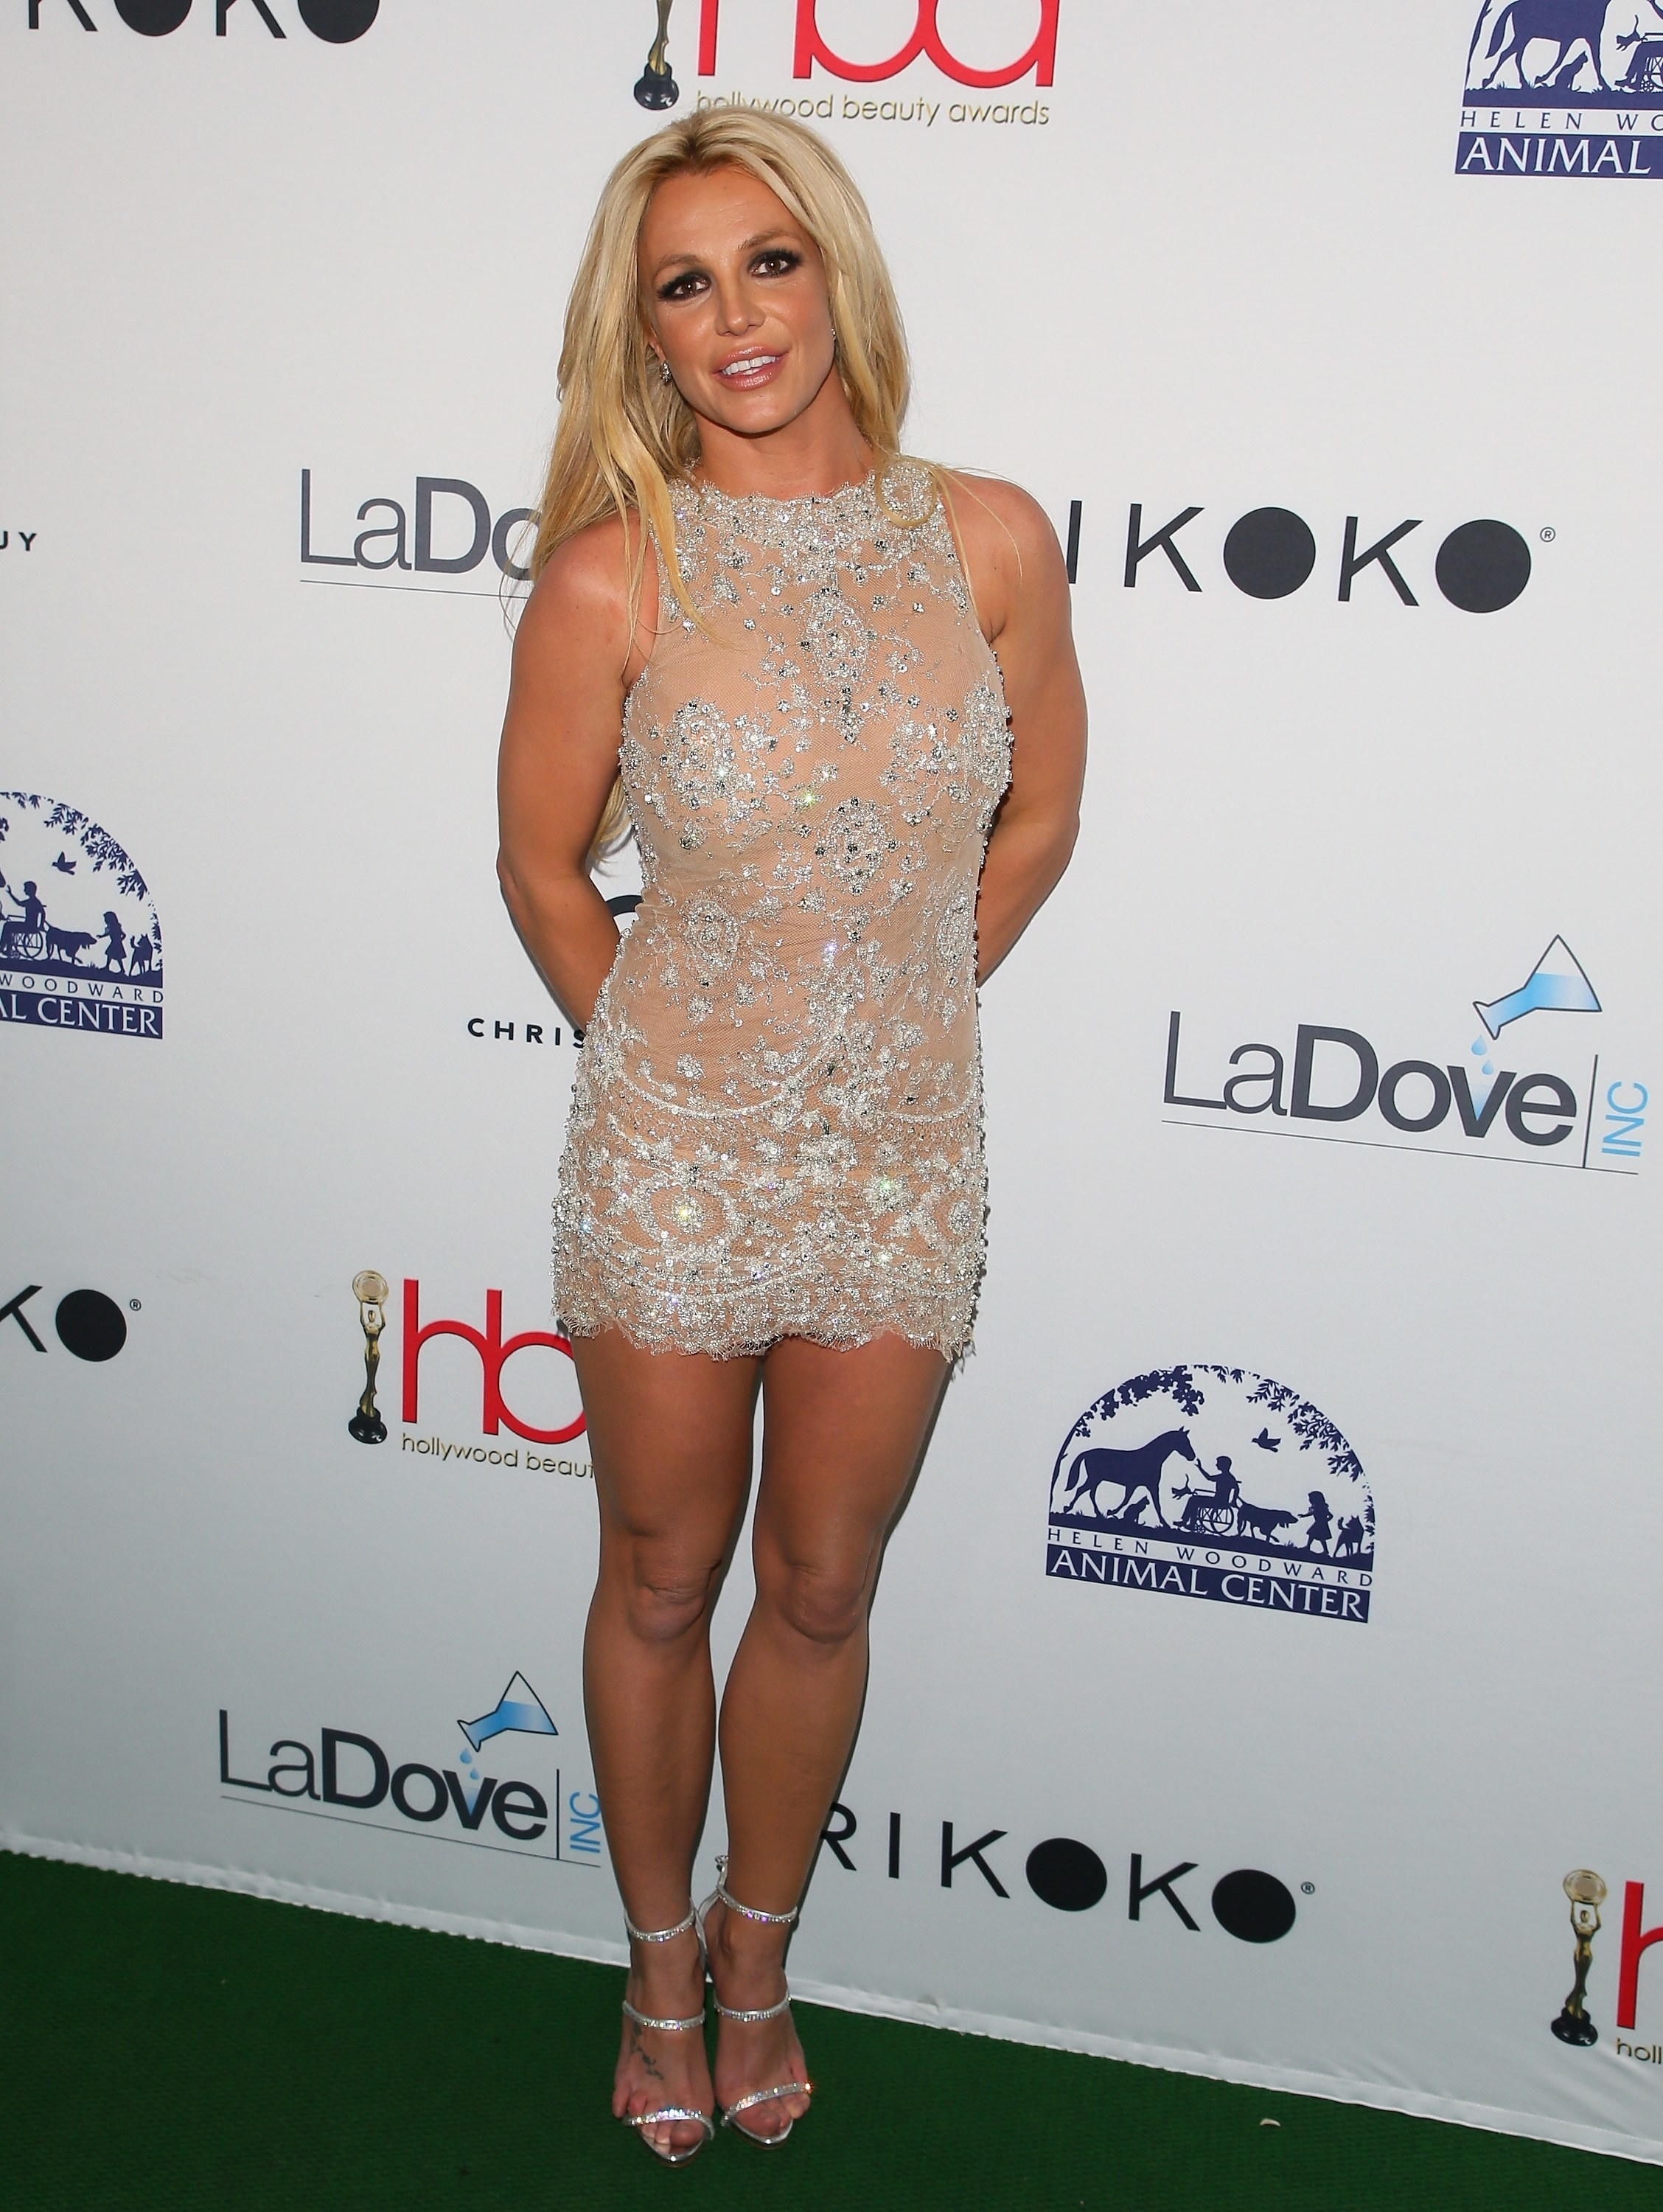 Spears on the red carpet at the Hollywood Beauty Awards in 2018